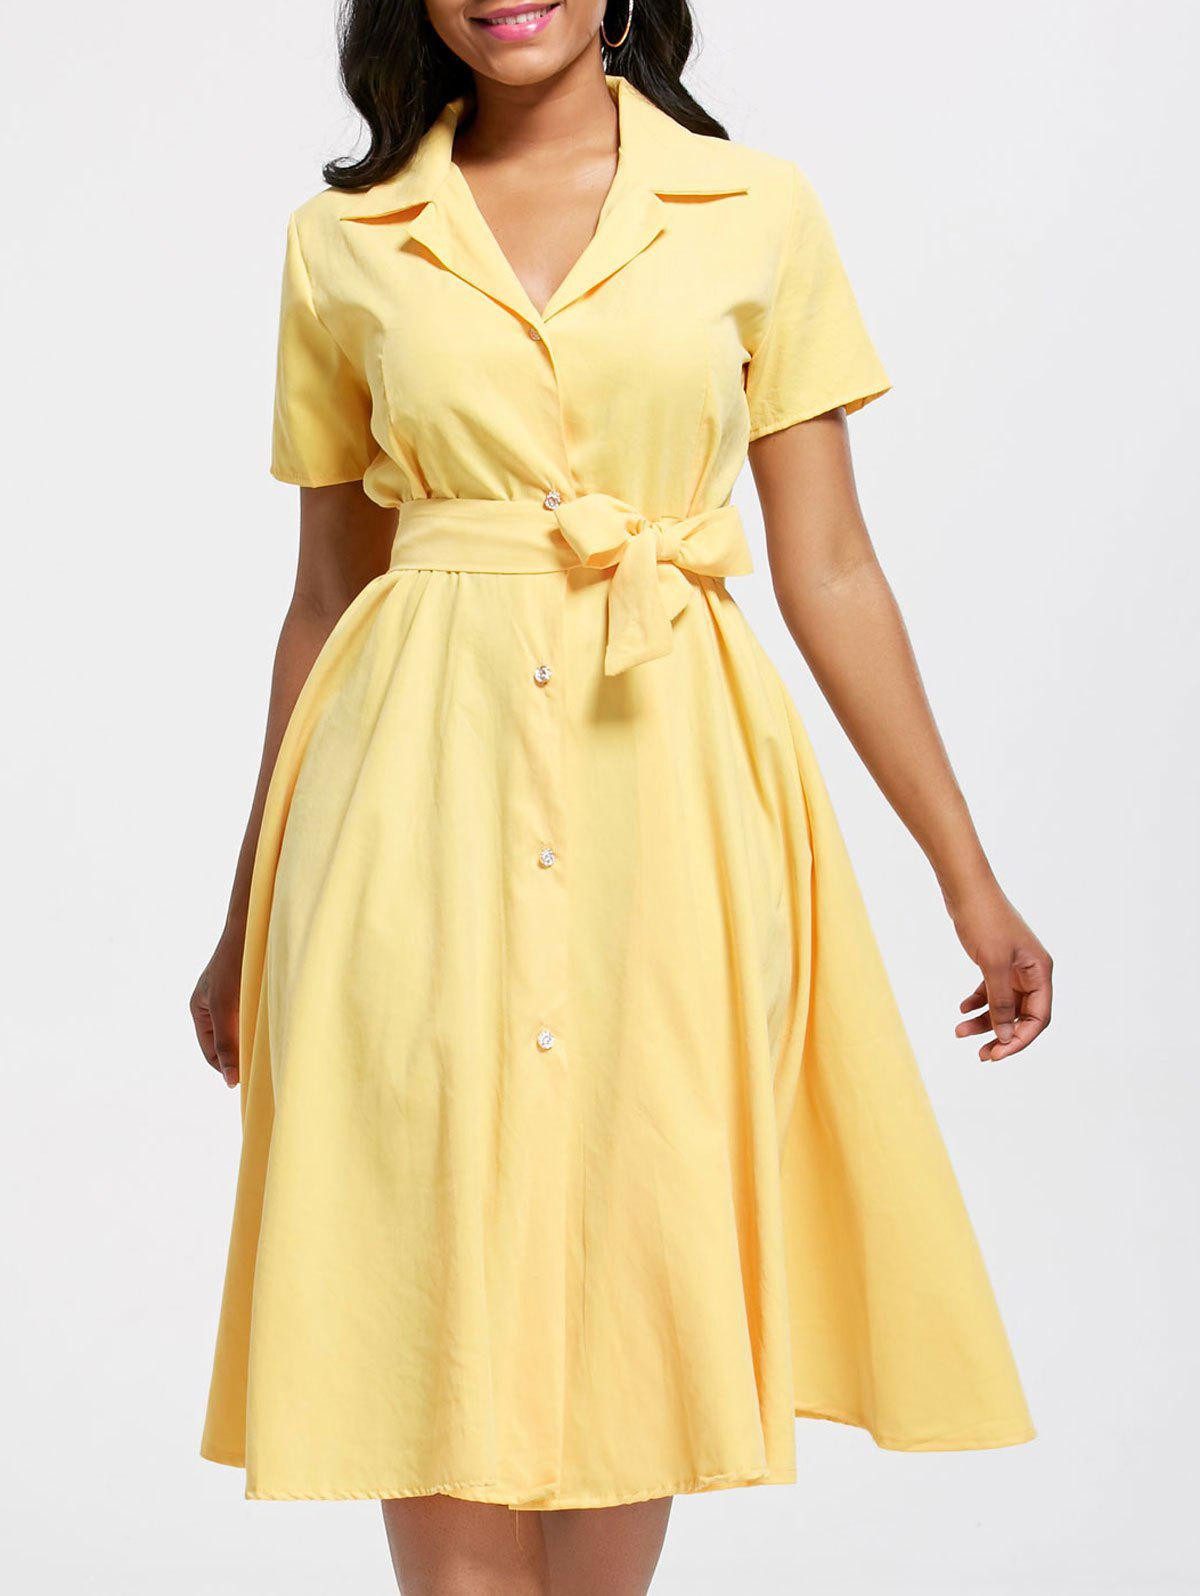 Short Sleeve Button Up Maxi Shirt Dress - YELLOW XL